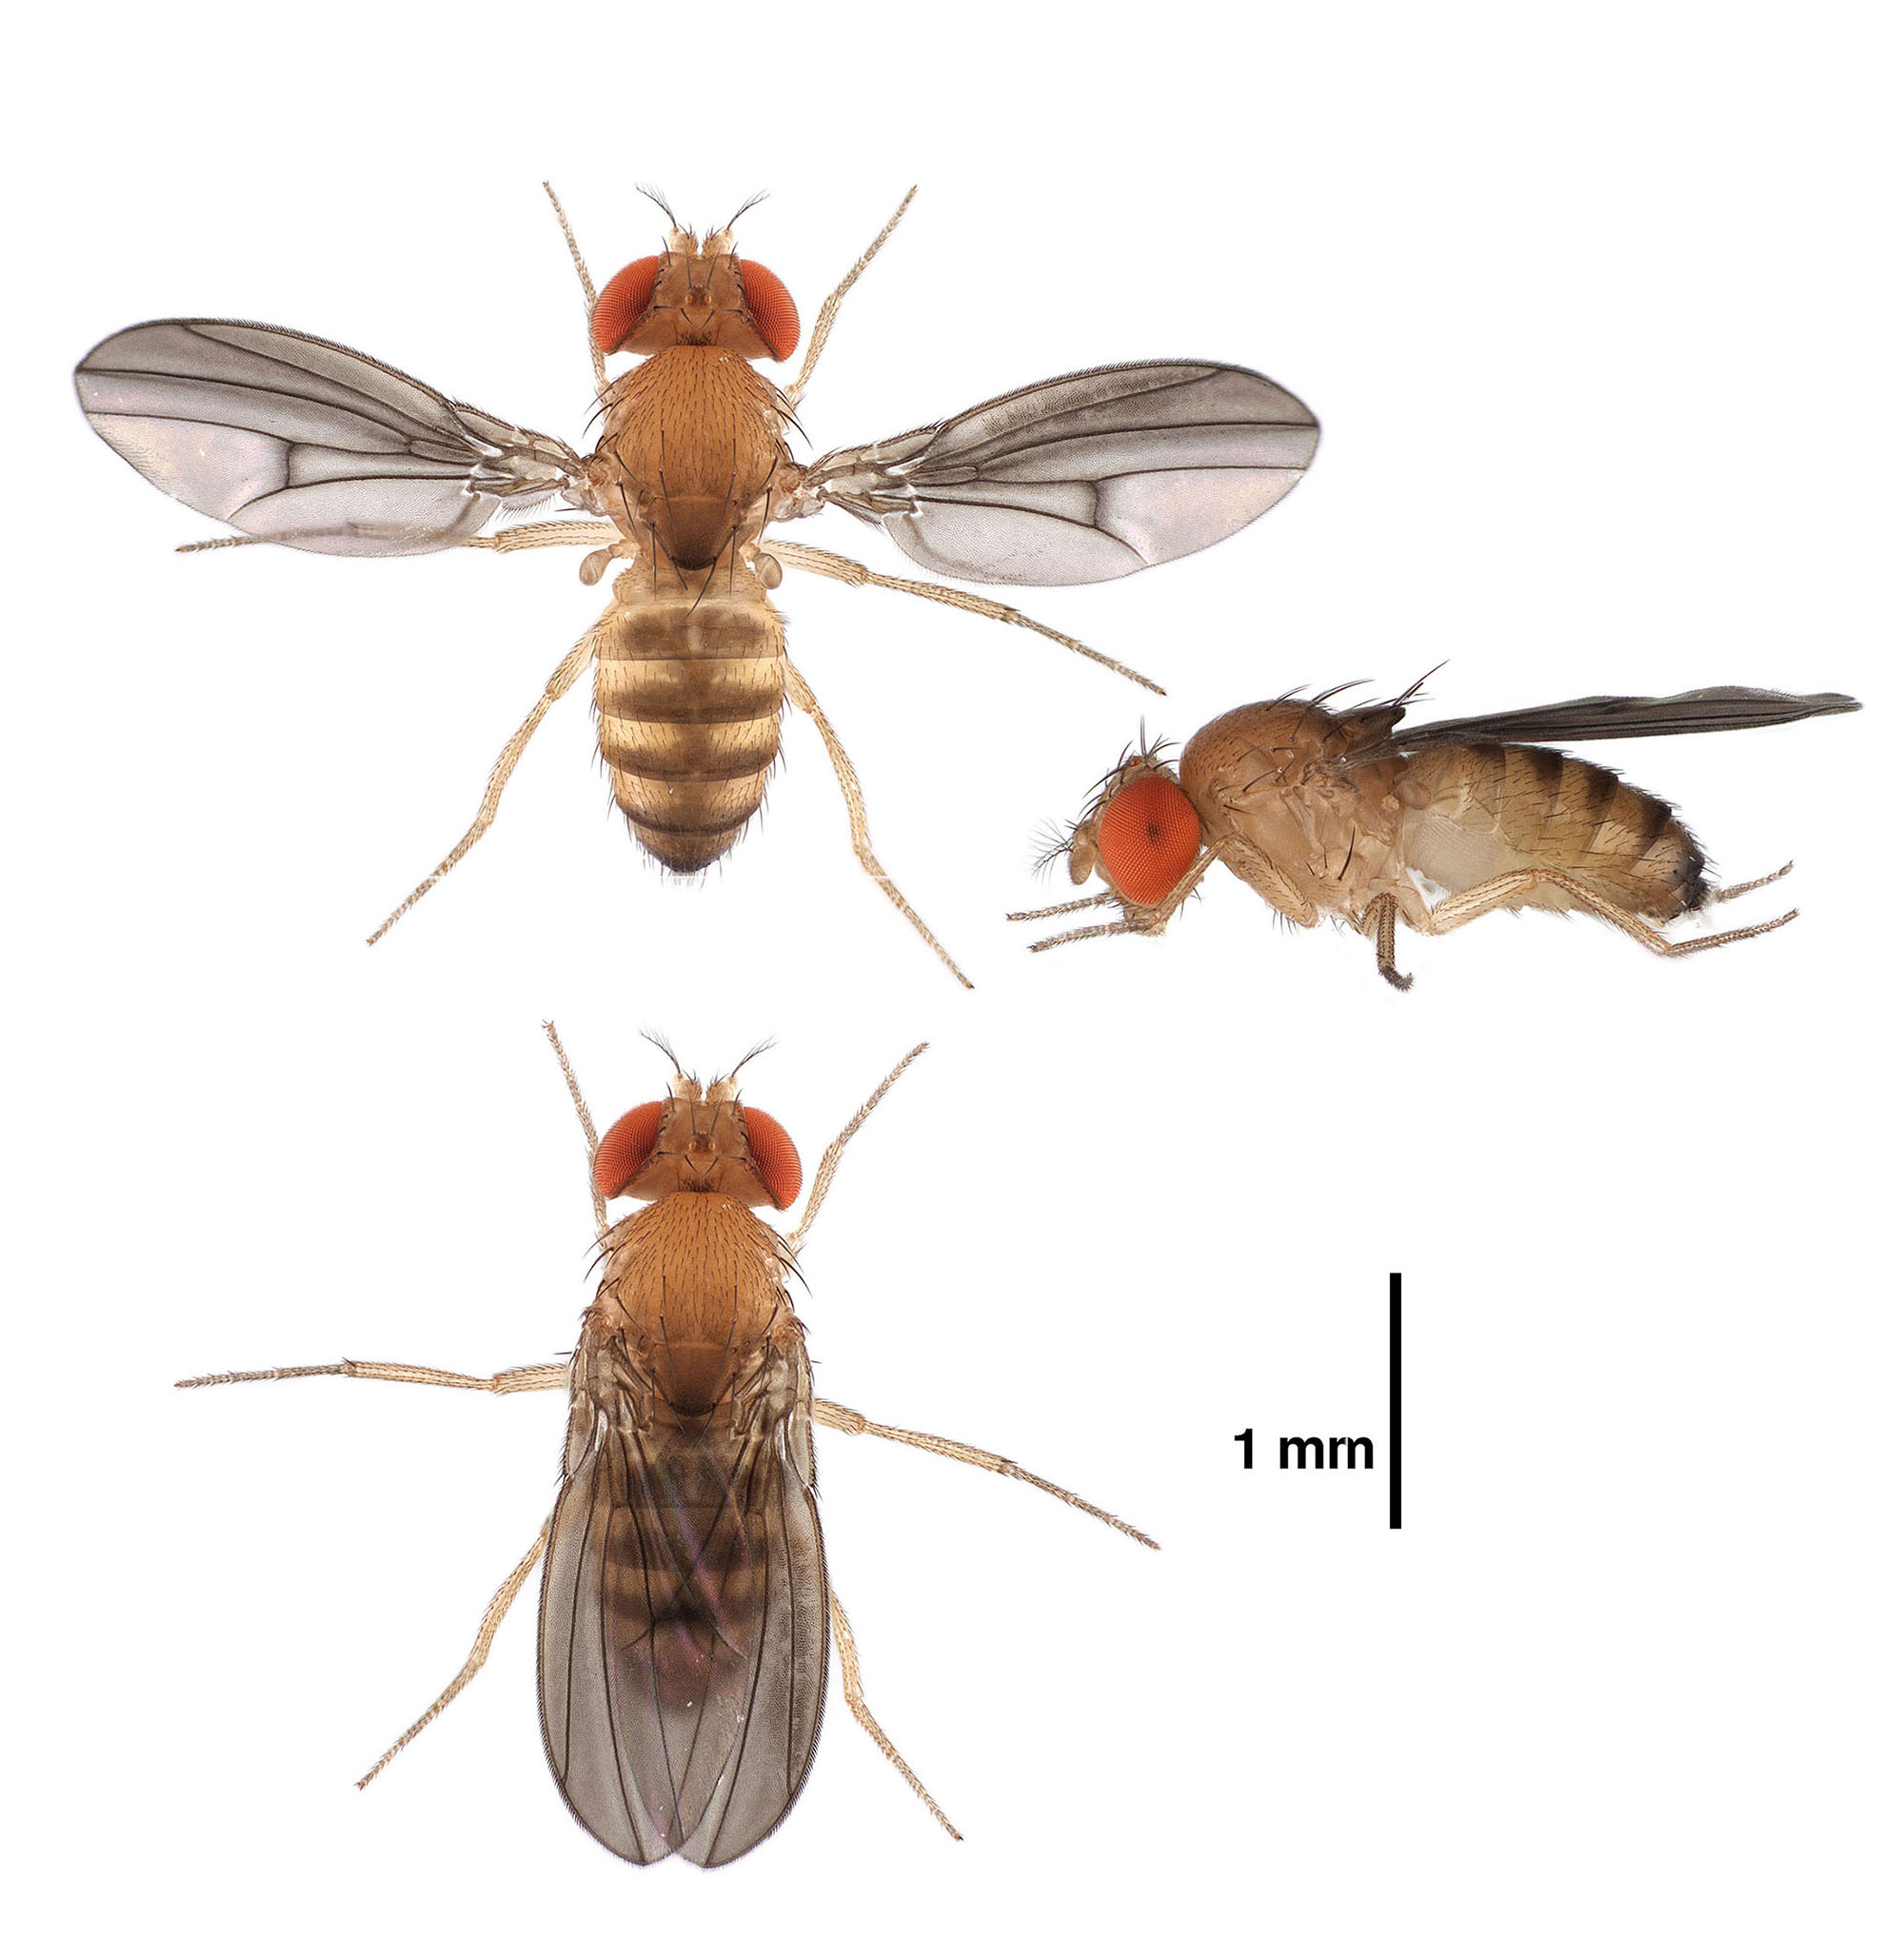 Drosophila nebulosa